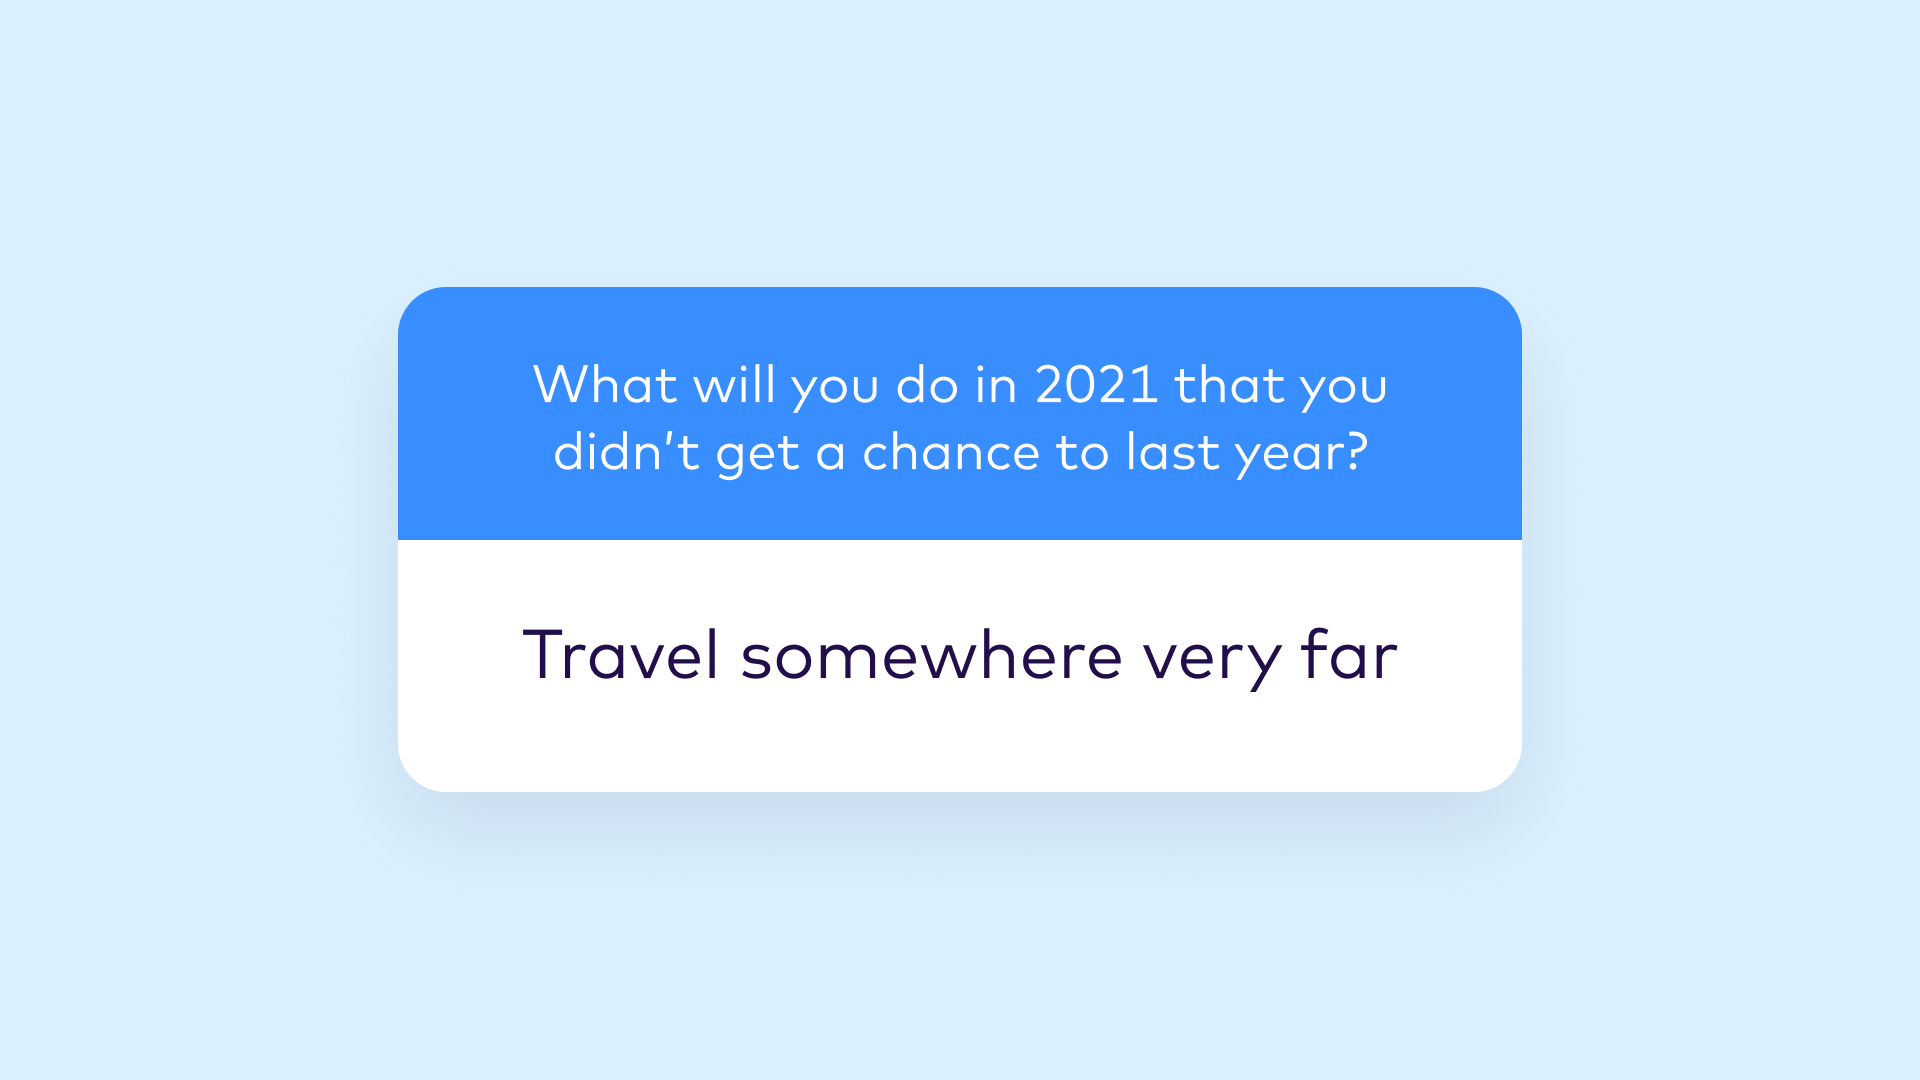 IG Story travel question and answer